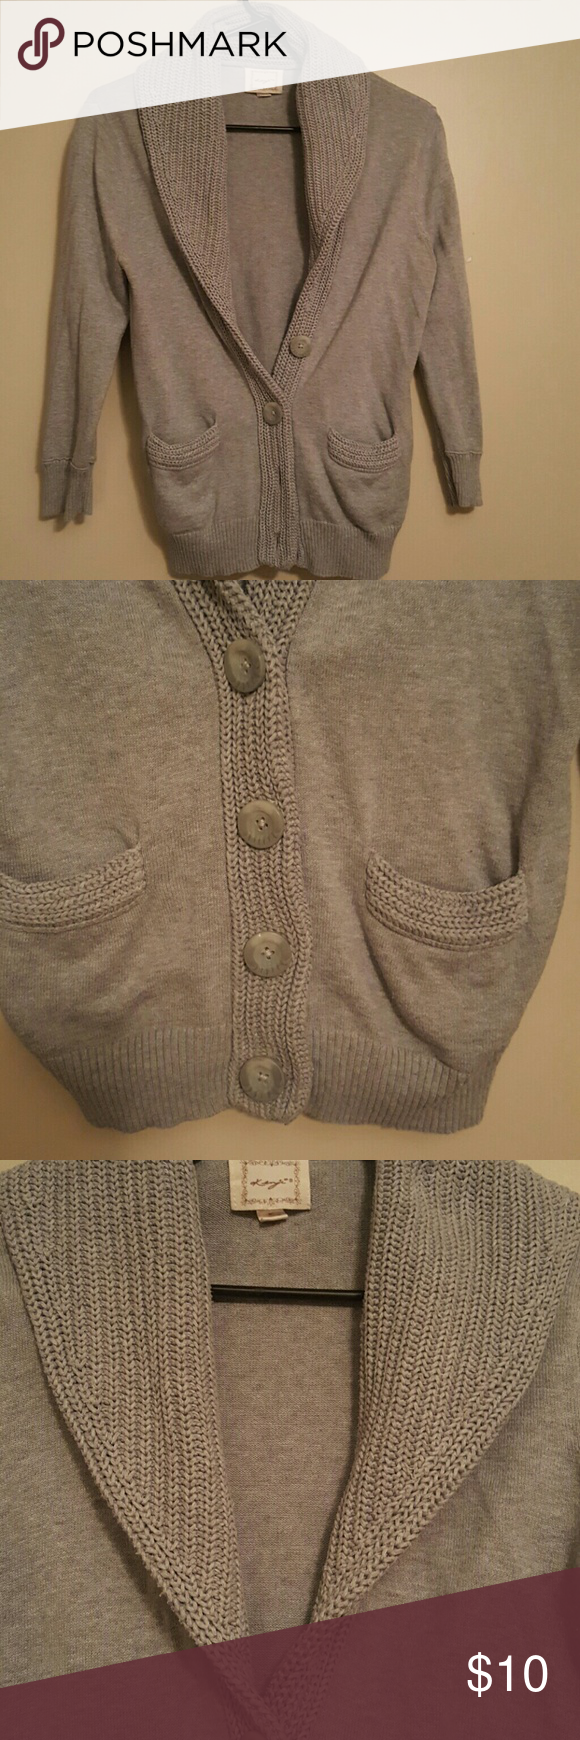 Kenji sweater 3/4 length sweater with 4 button detail and two front pockets.  Accented in knitted gray on pockets, buttons, and collar. kenji Sweaters Cardigans